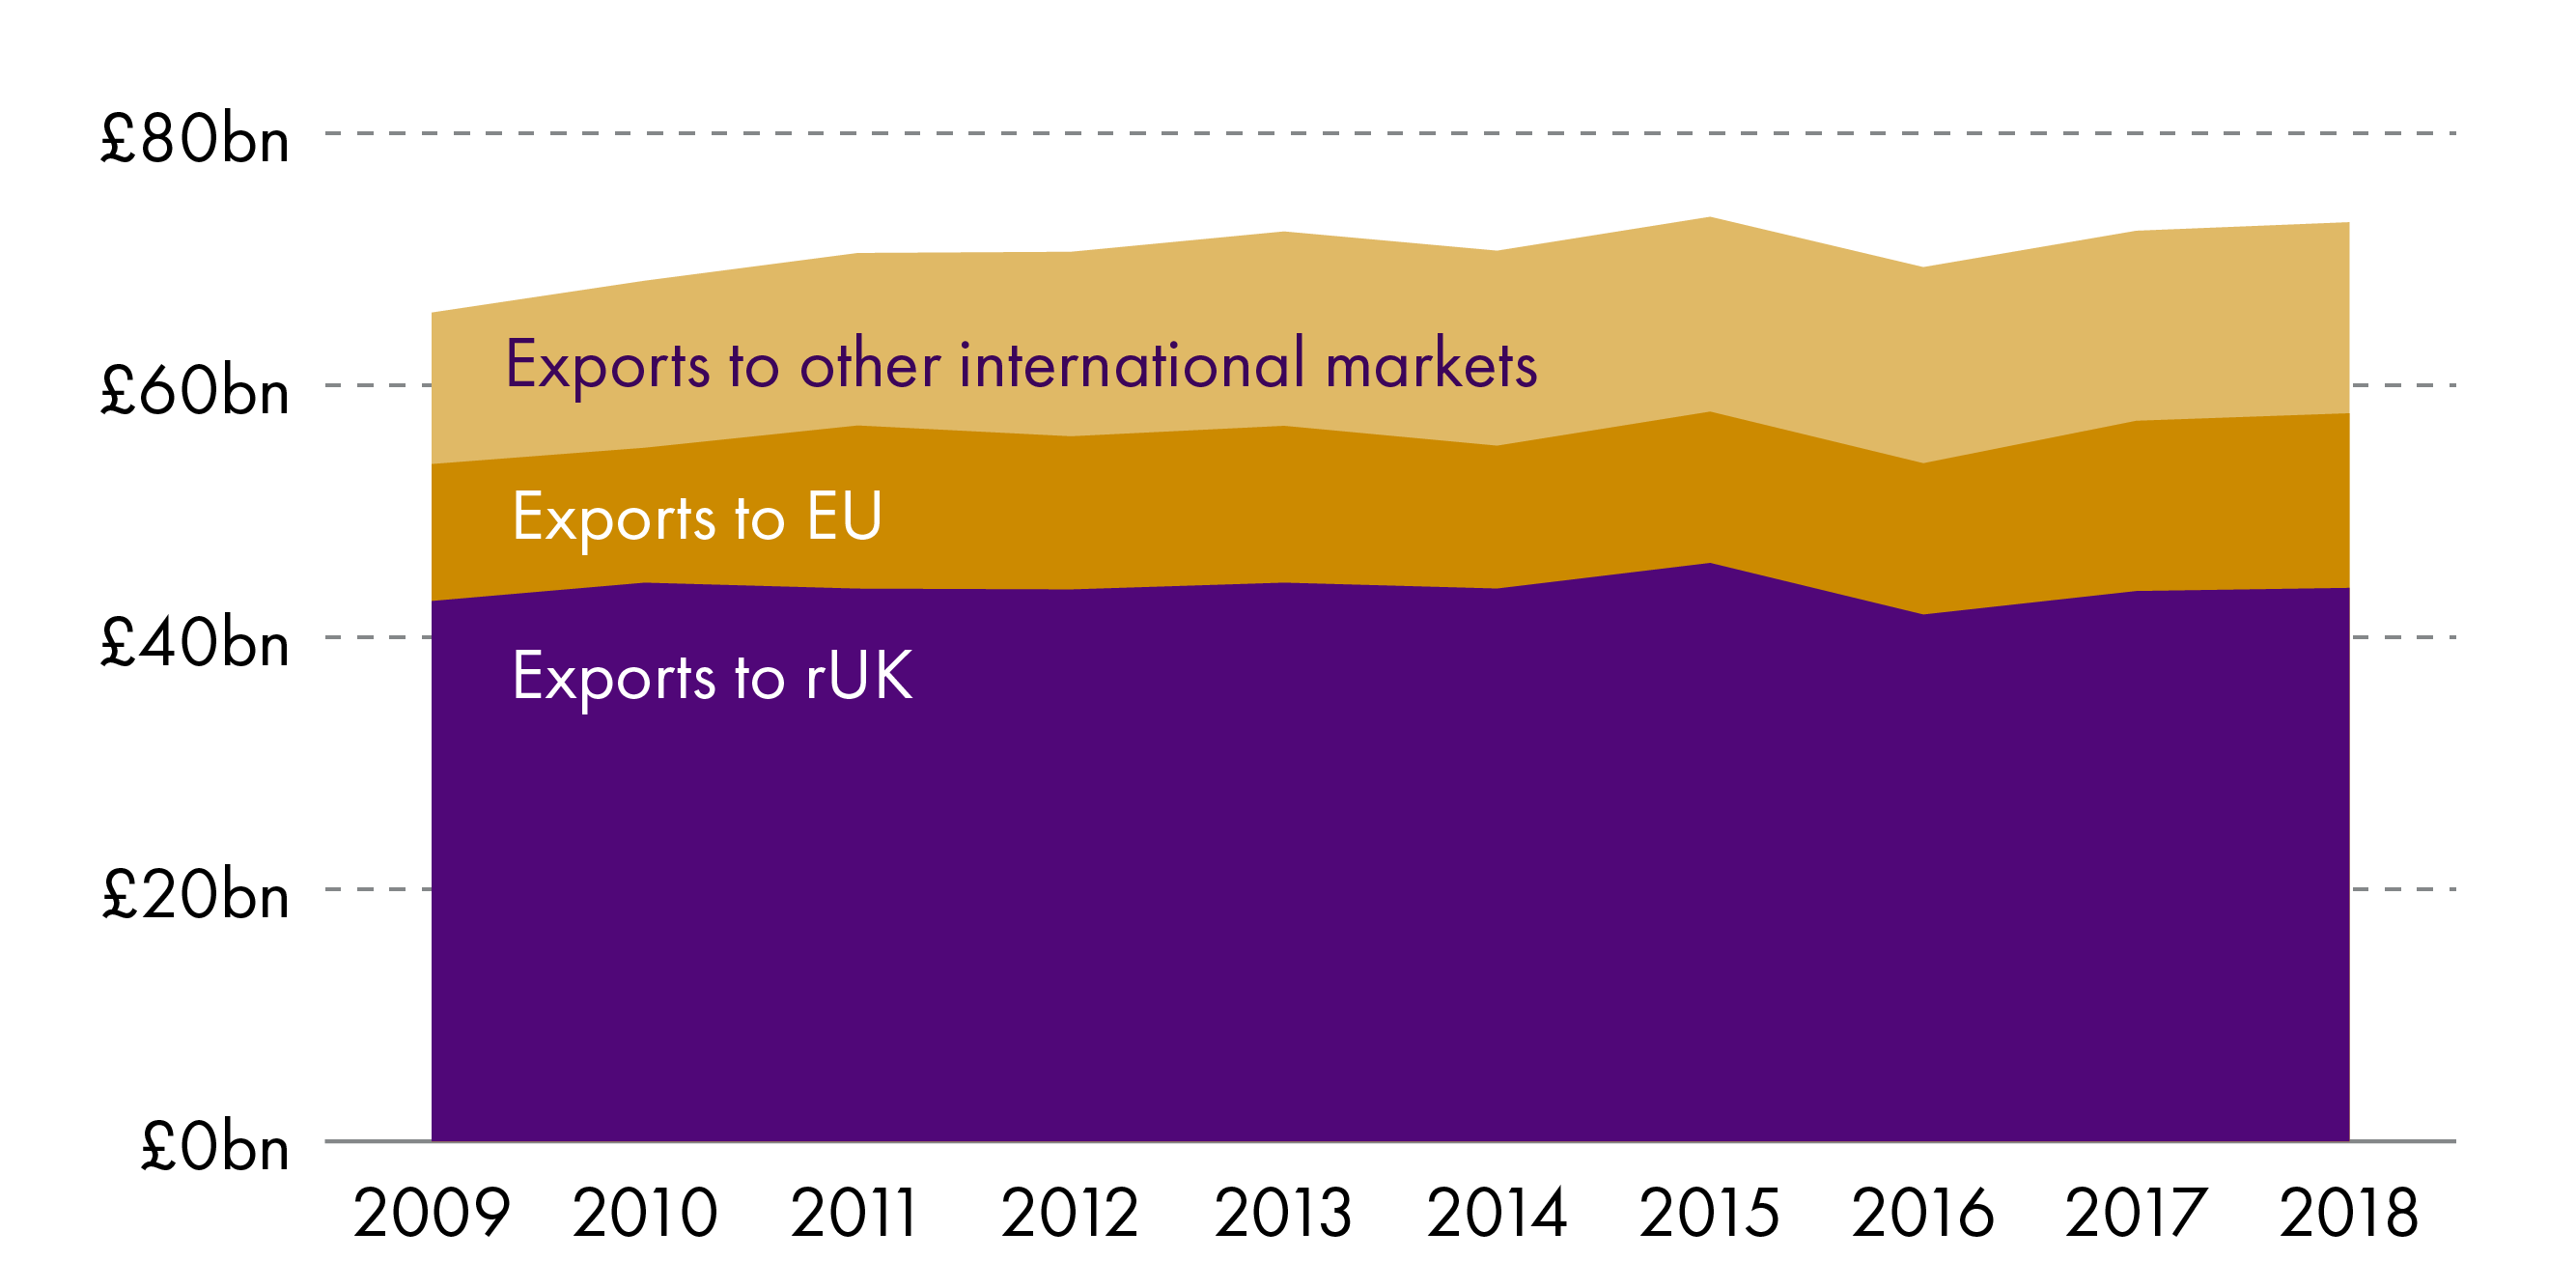 Between 2009 and 2018 exports to the rest of  the UK increased by 2.4% in real terms, while exports to the EU and other international destinations both increased by over 25%